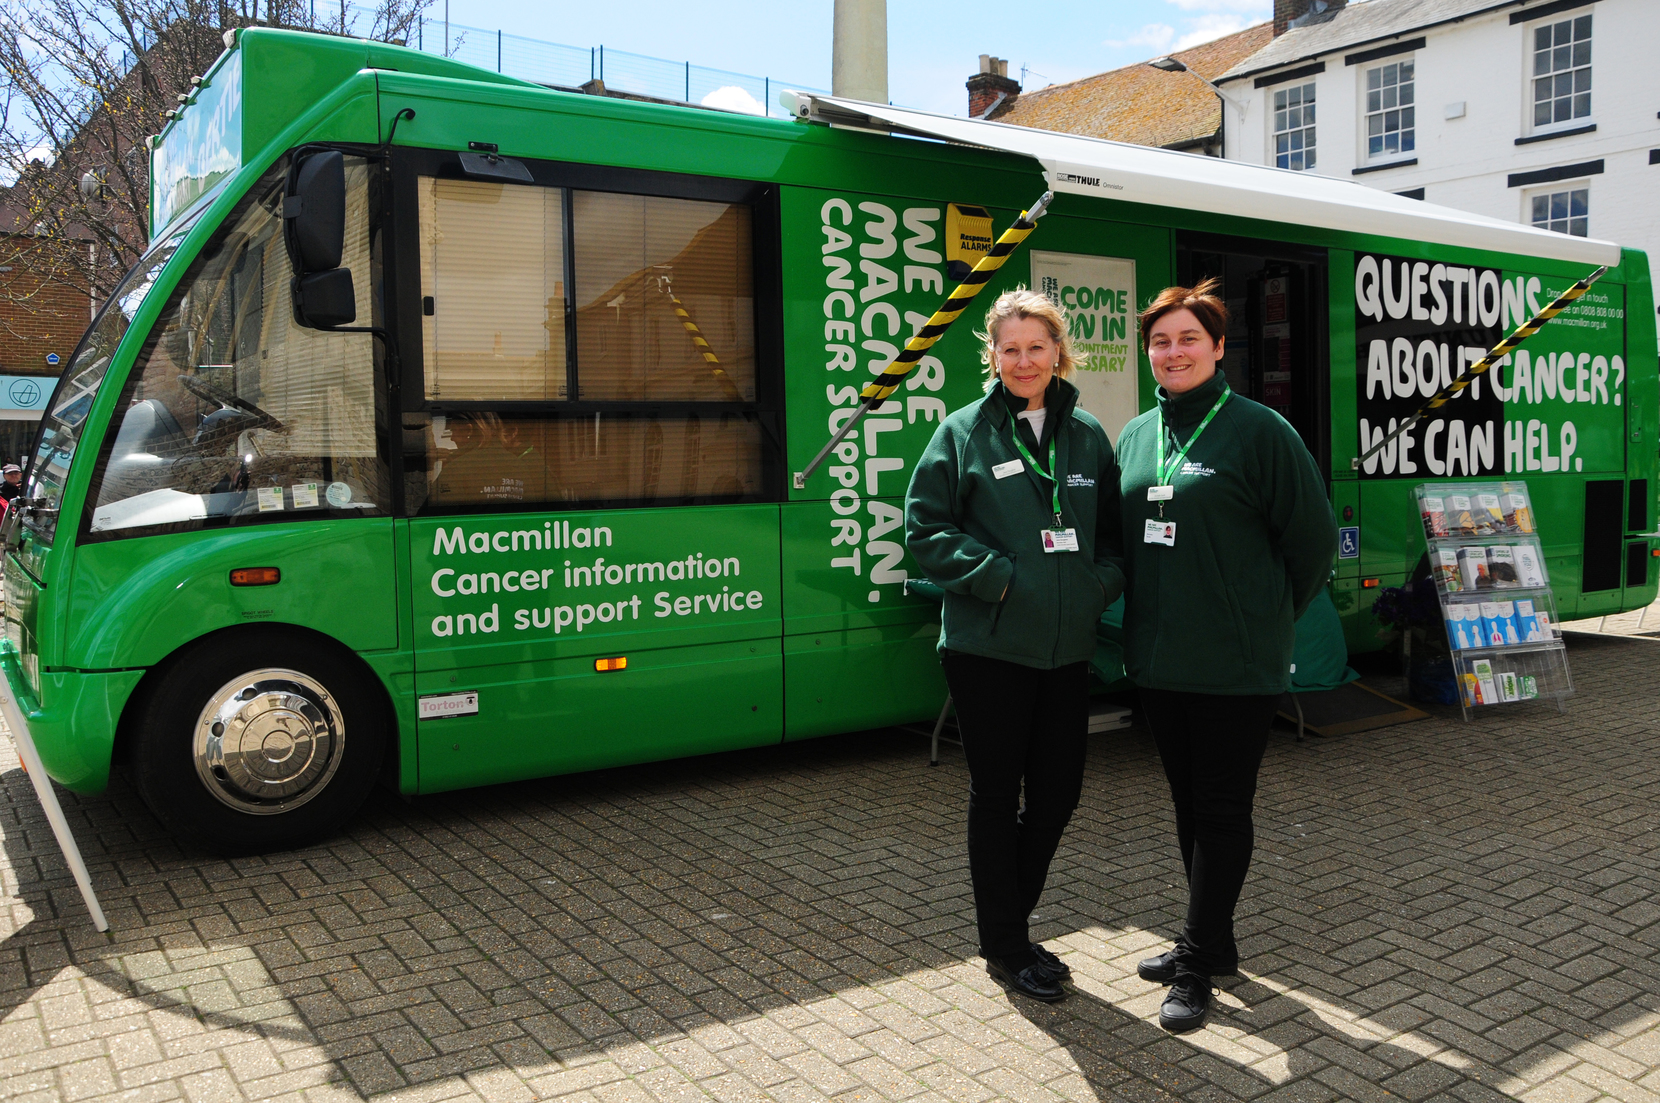 Macmillan Cancer Support Information Service in Camborne